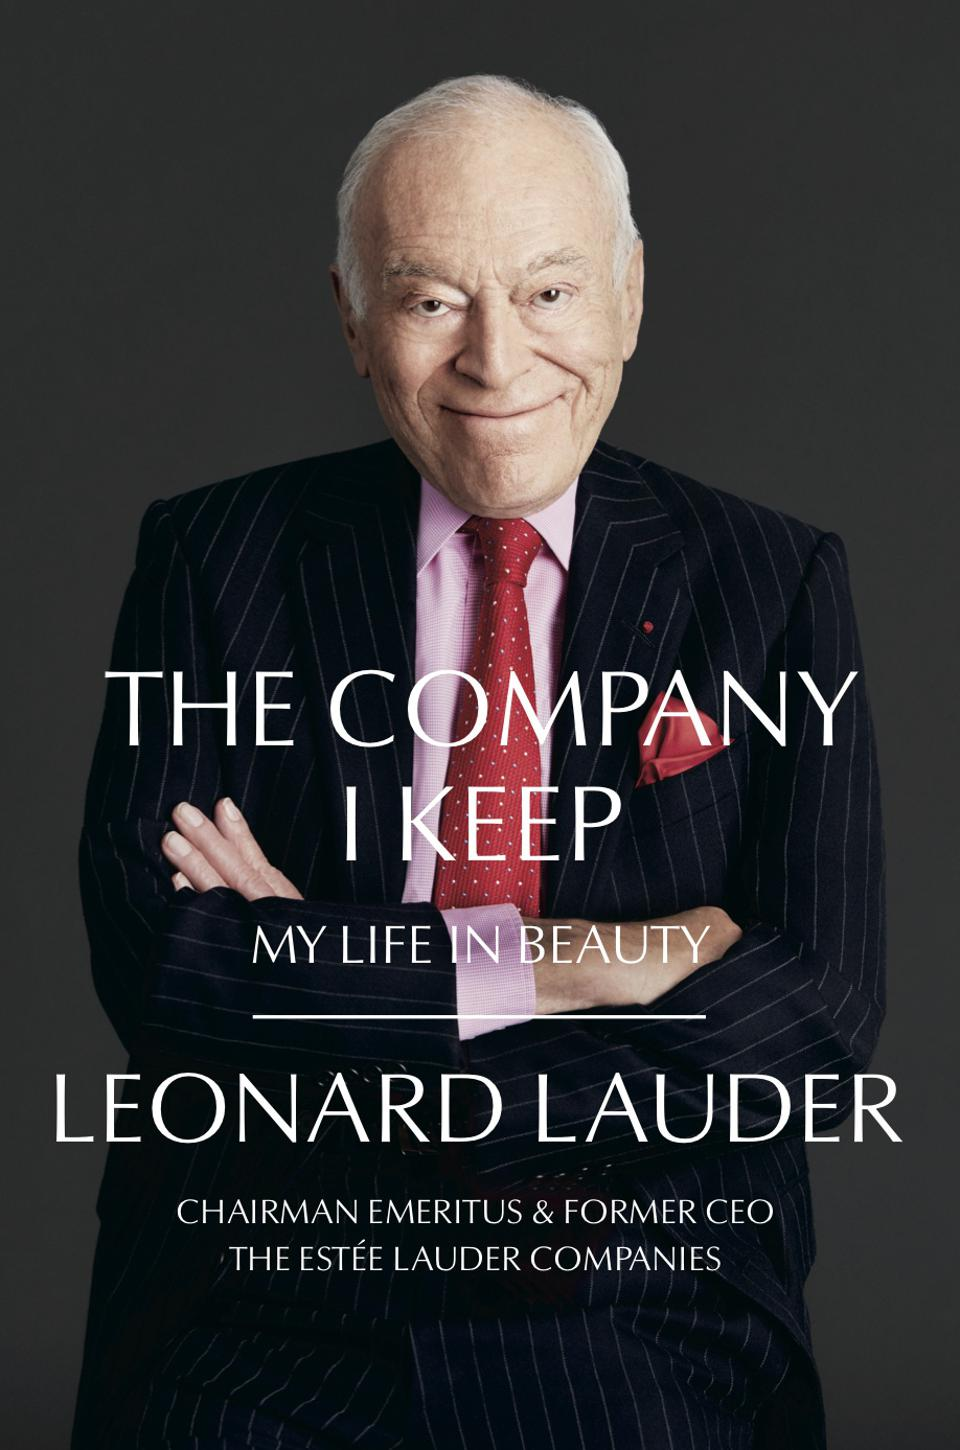 Book Jacket Cover, Leonard Lauder with his arms crossed, Chairman Emeritus & Former CEO, The. Estée Lauder Companies